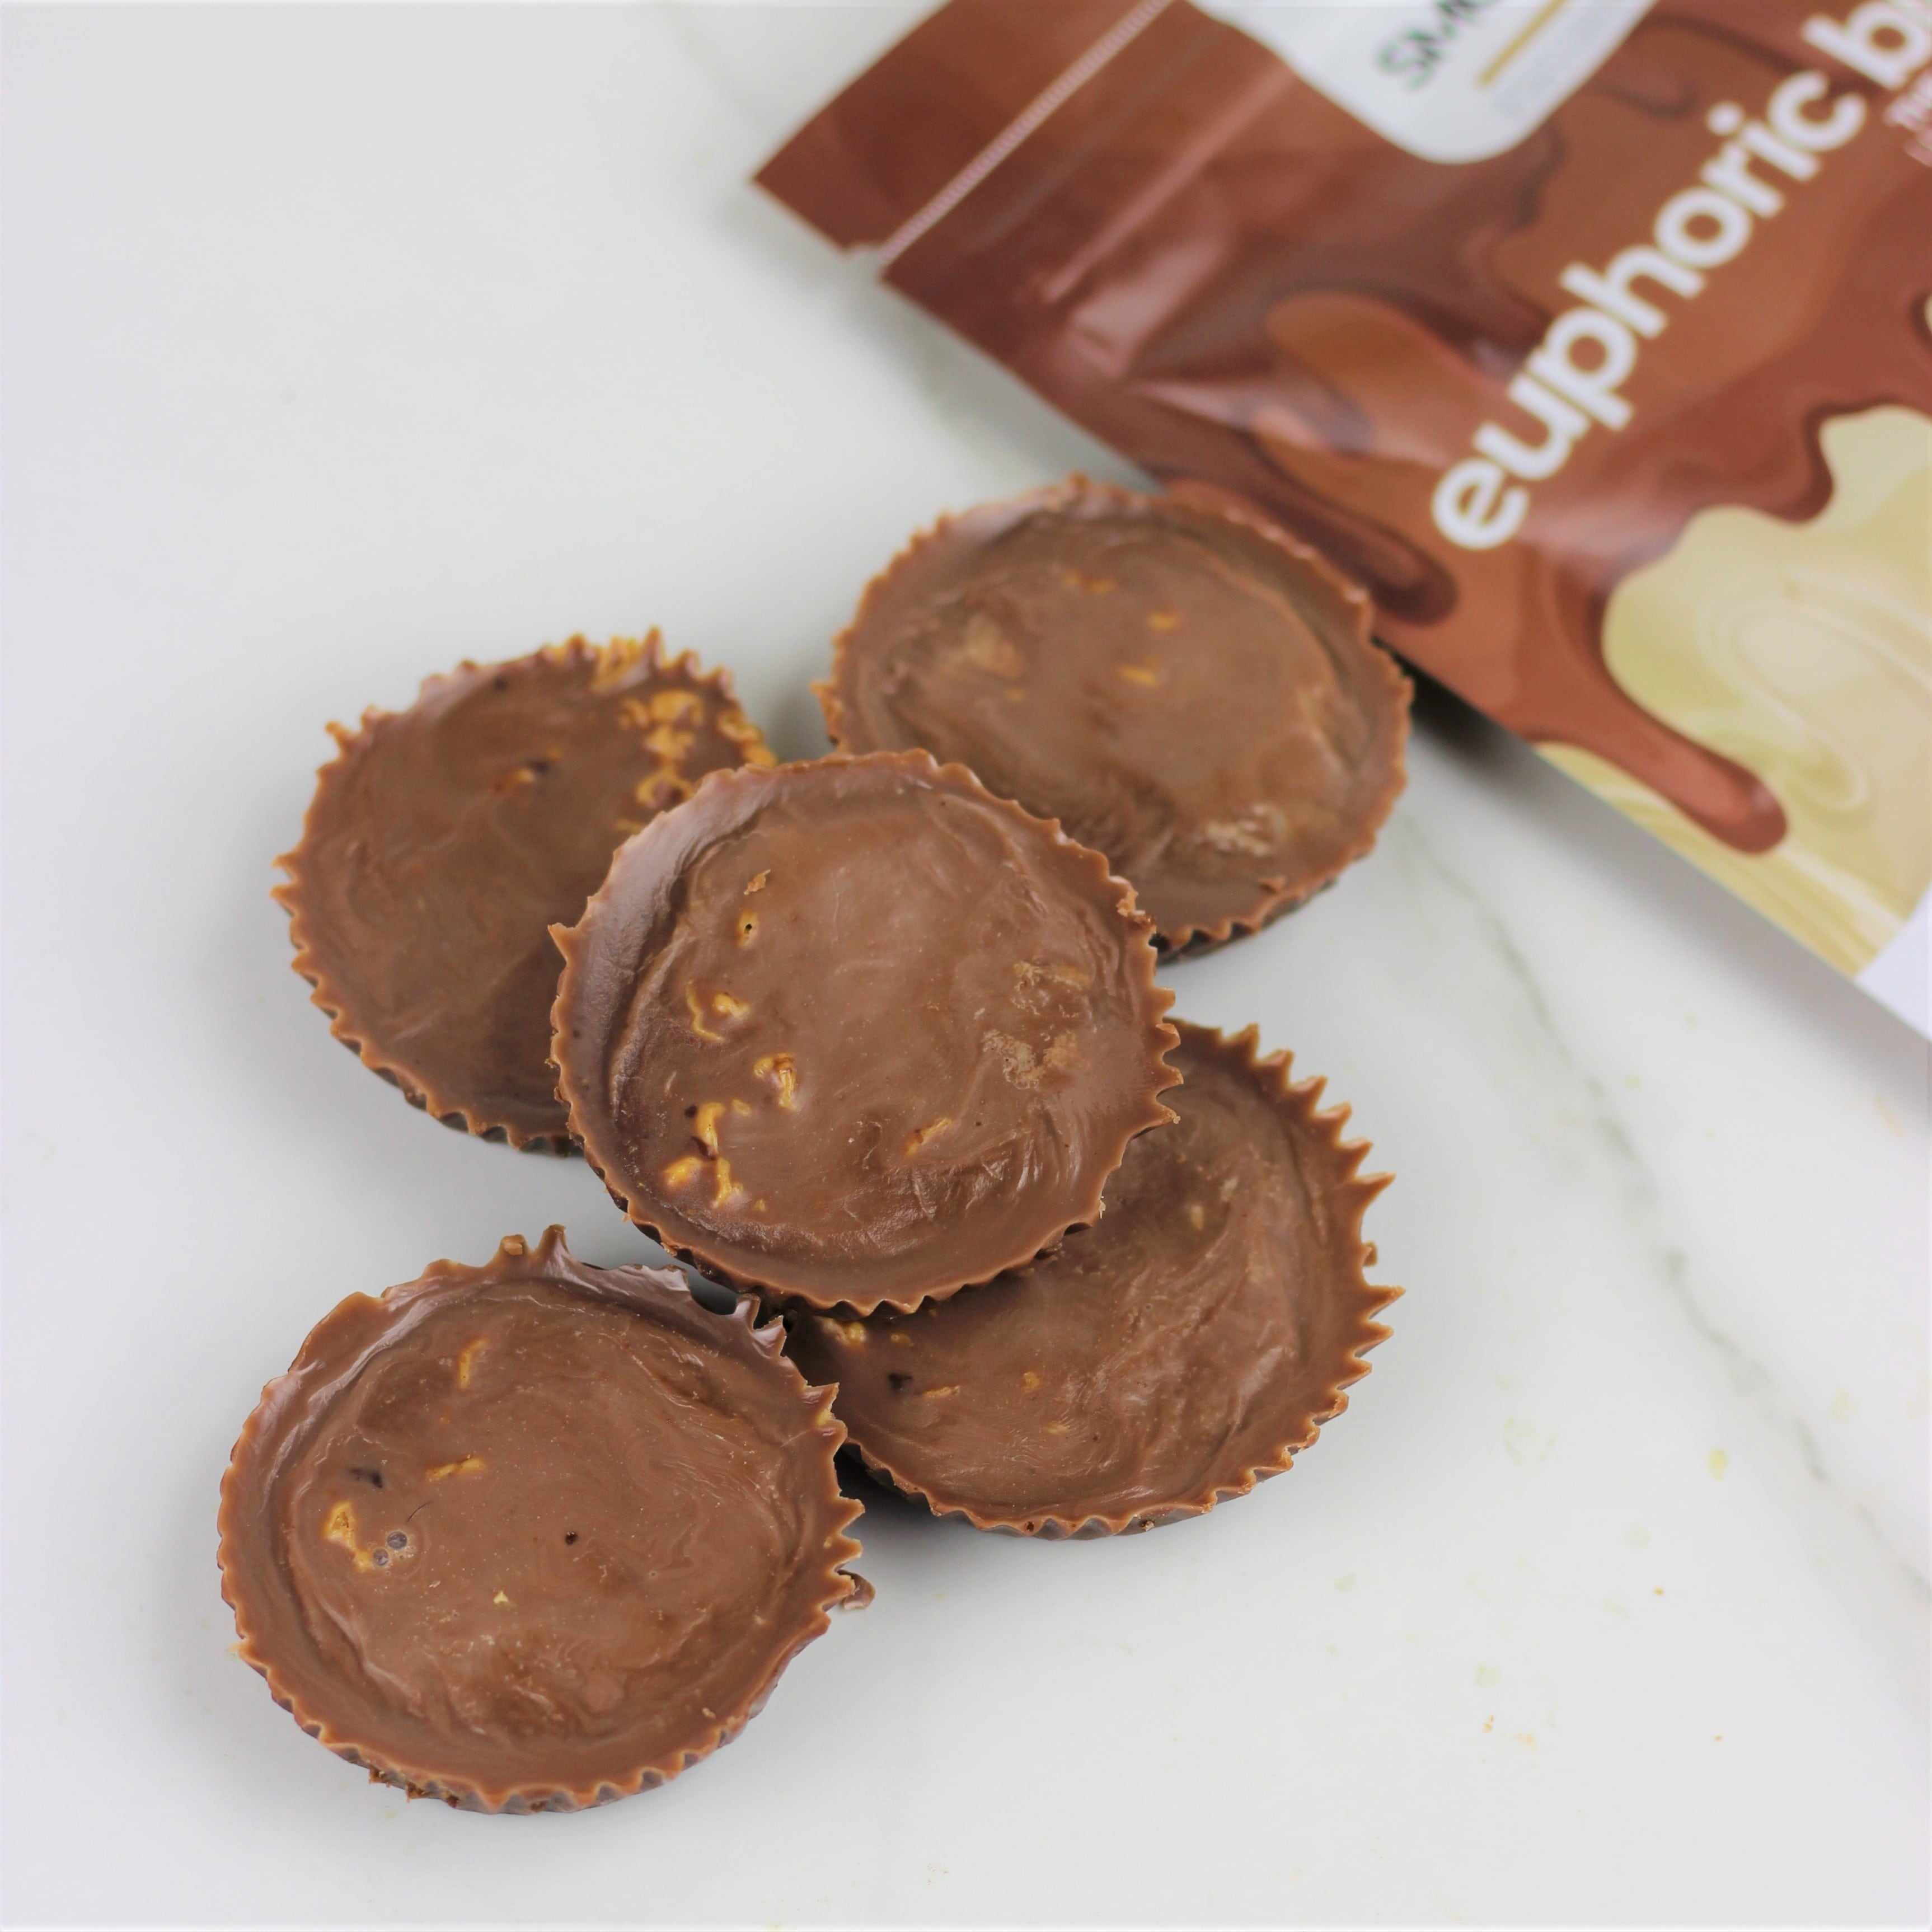 SMOOV euphoric blend has 6 powerful and delicious foods packed with antioxidants, healthy fats and adaptogens- Raw cacao, Carob, Mesquite, Maca, Lucuma and shredded Coconut. A healthy way to satisfy cravings and boost mood instantly!